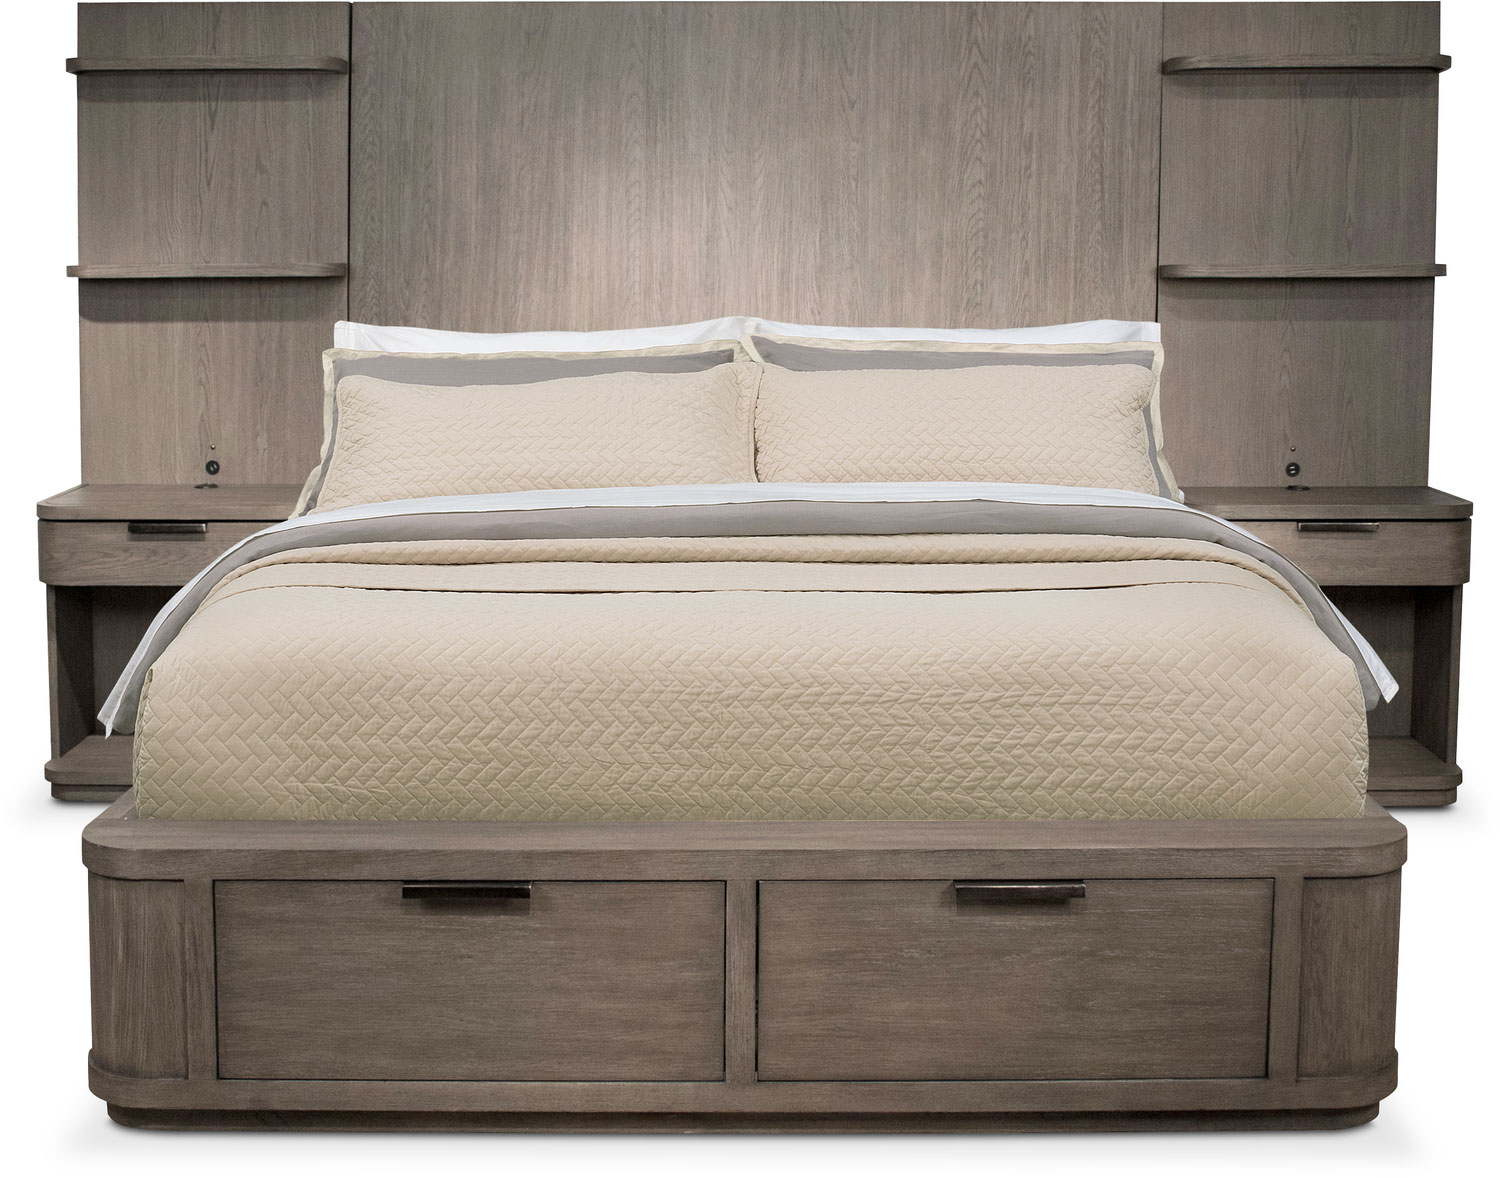 Malibu Queen Tall Storage Wall Bed - Gray